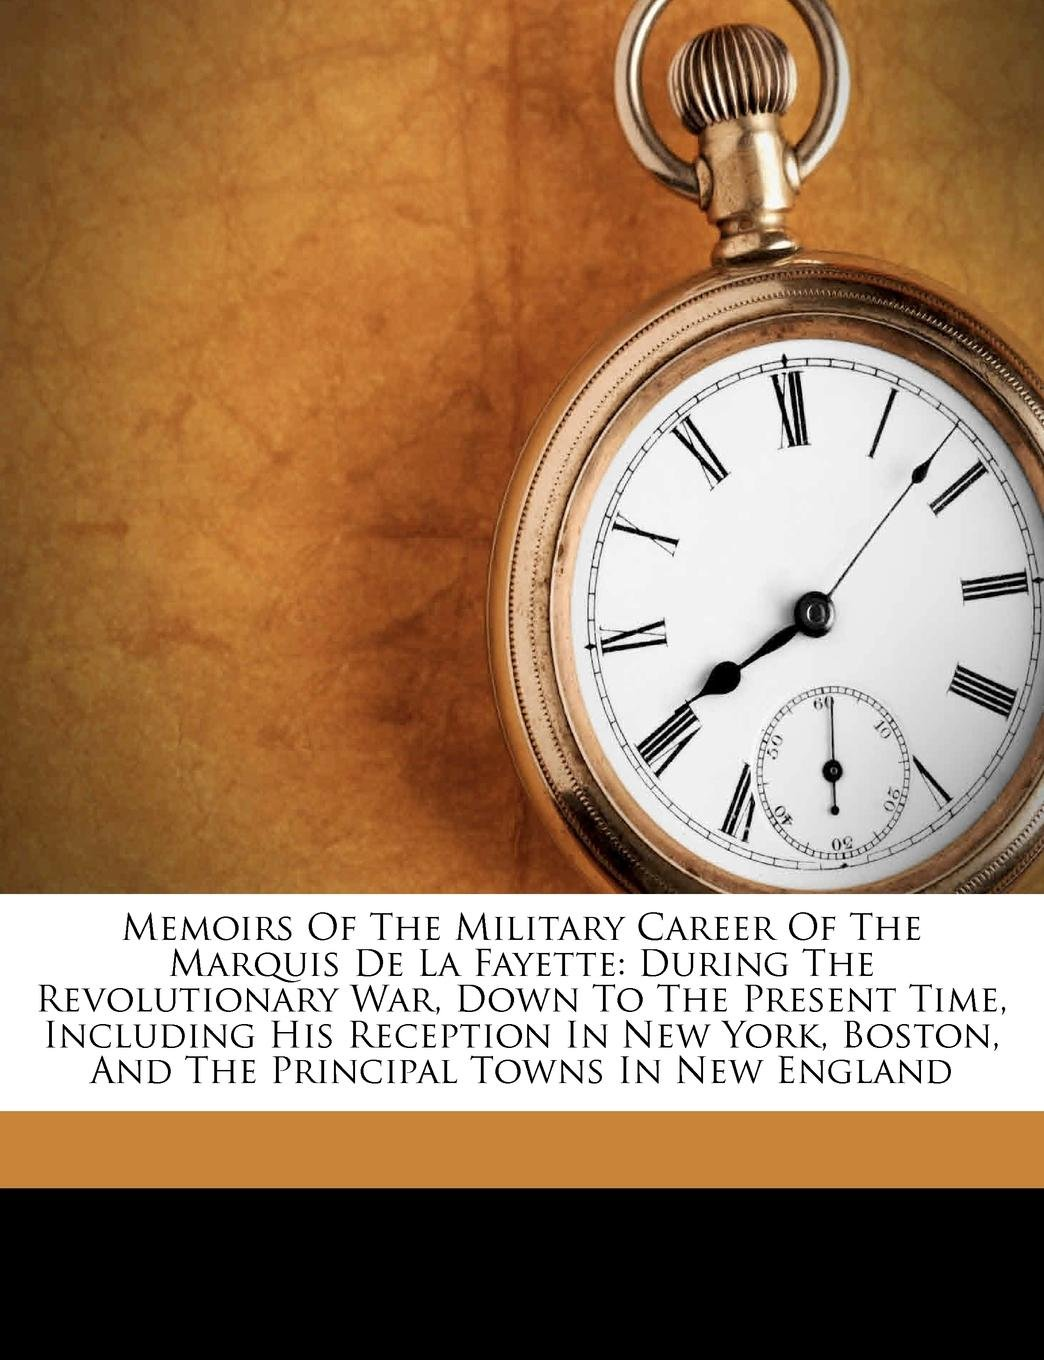 Download Memoirs Of The Military Career Of The Marquis De La Fayette: During The Revolutionary War, Down To The Present Time, Including His Reception In New York, Boston, And The Principal Towns In New England PDF